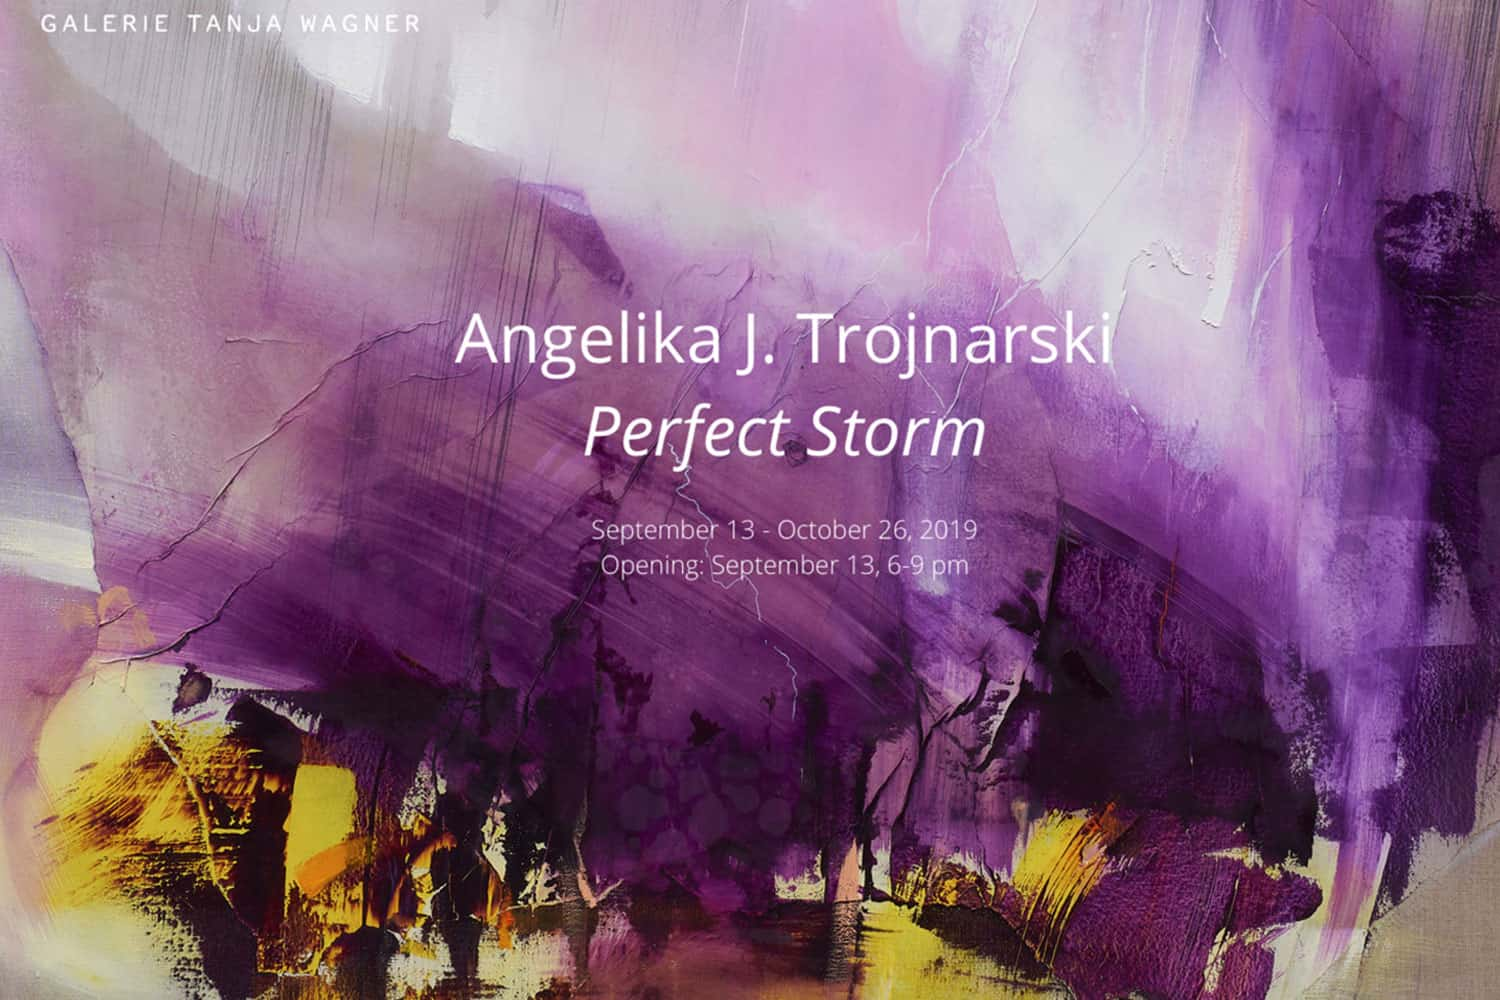 angelika trojnarski exhibition